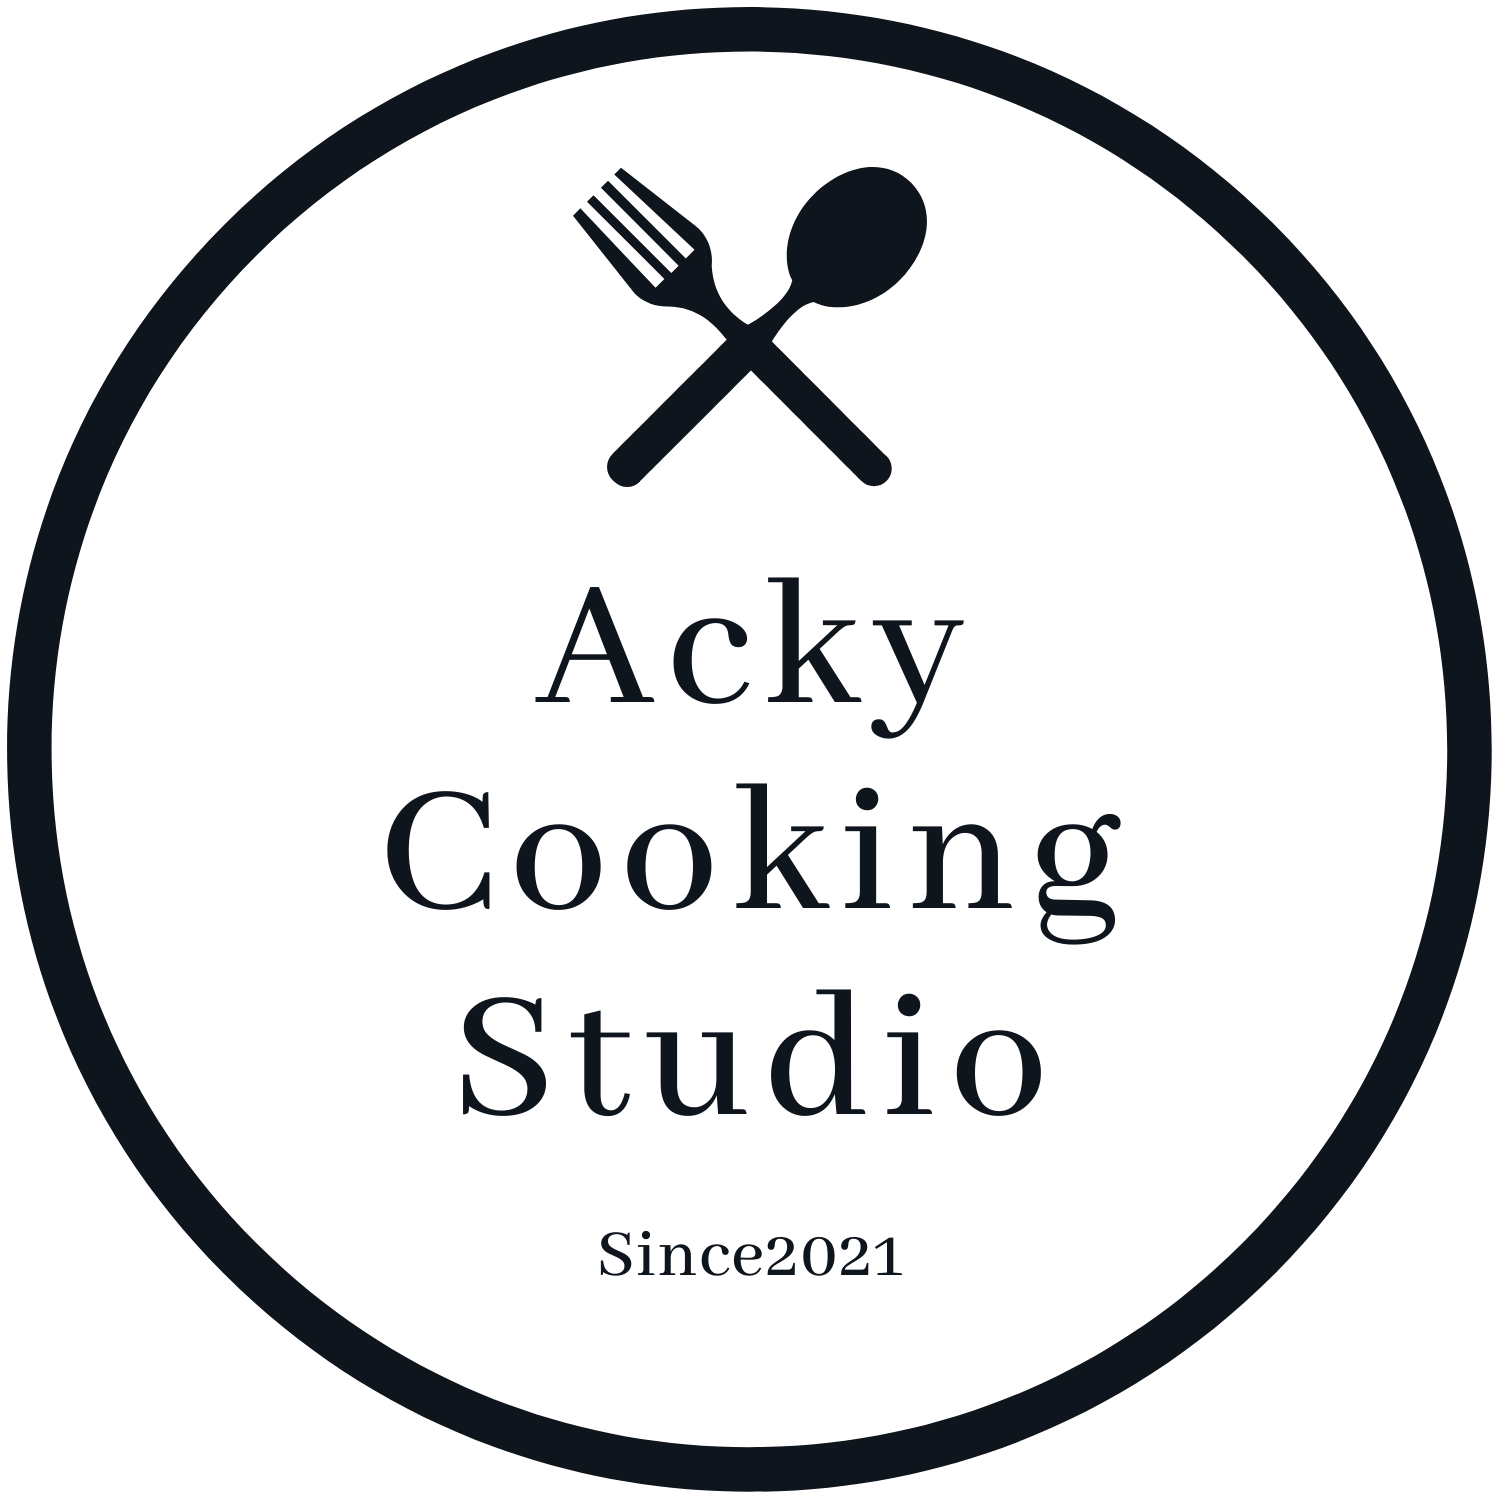 【Studio apps】Acky Cooking Studio